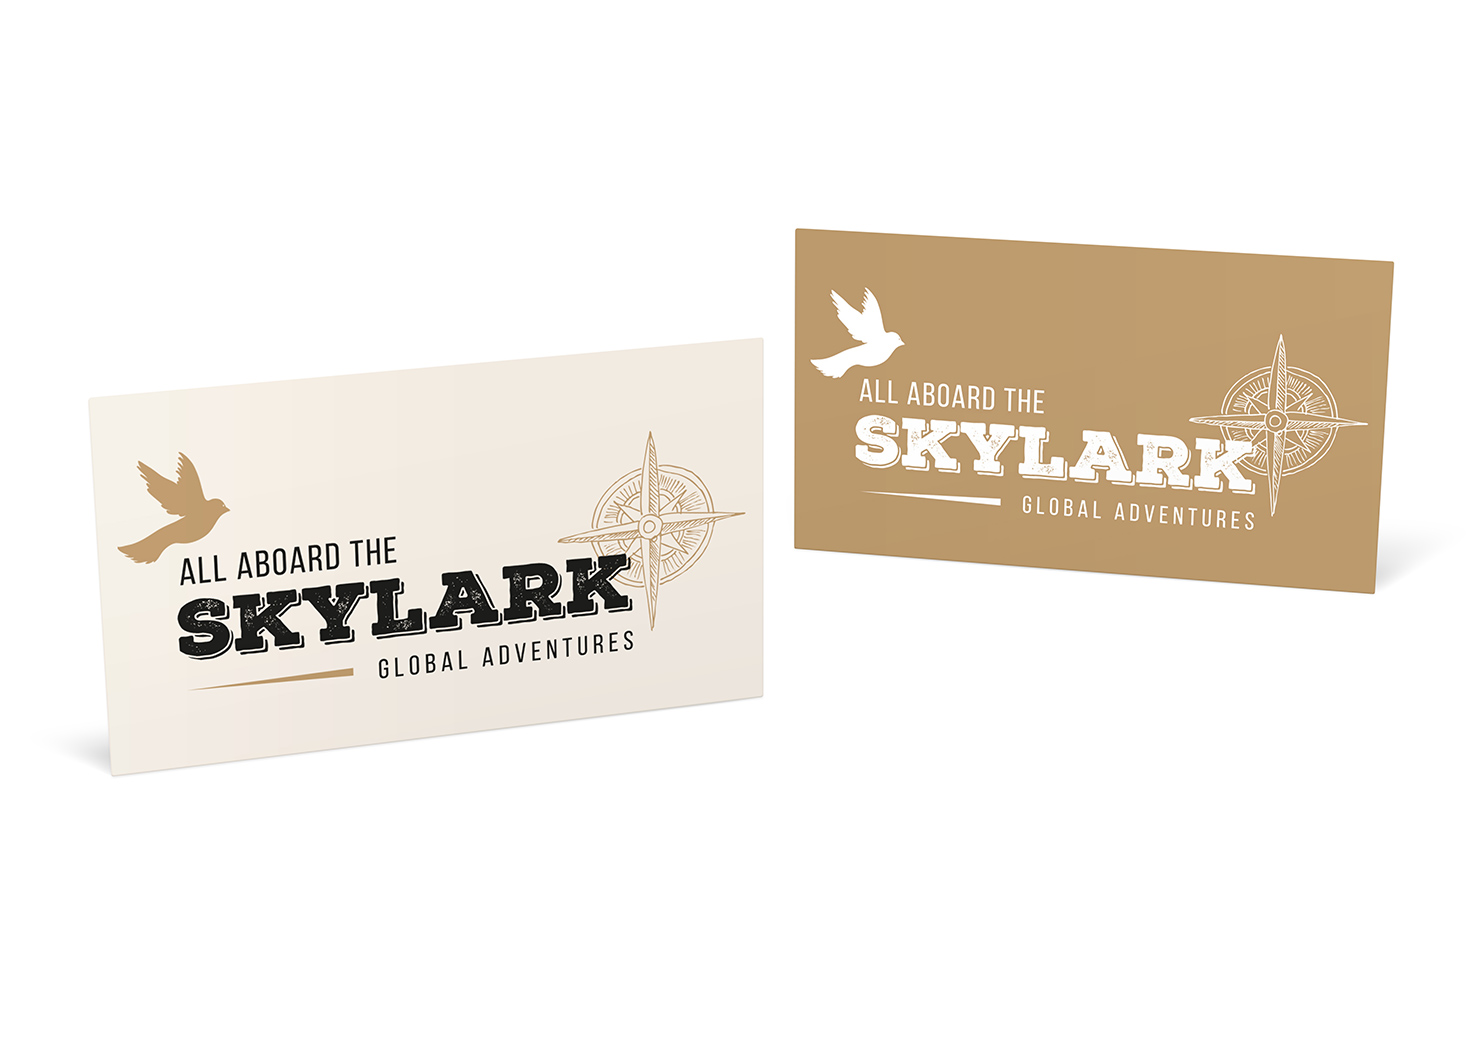 Client: All Aboard the Skylark